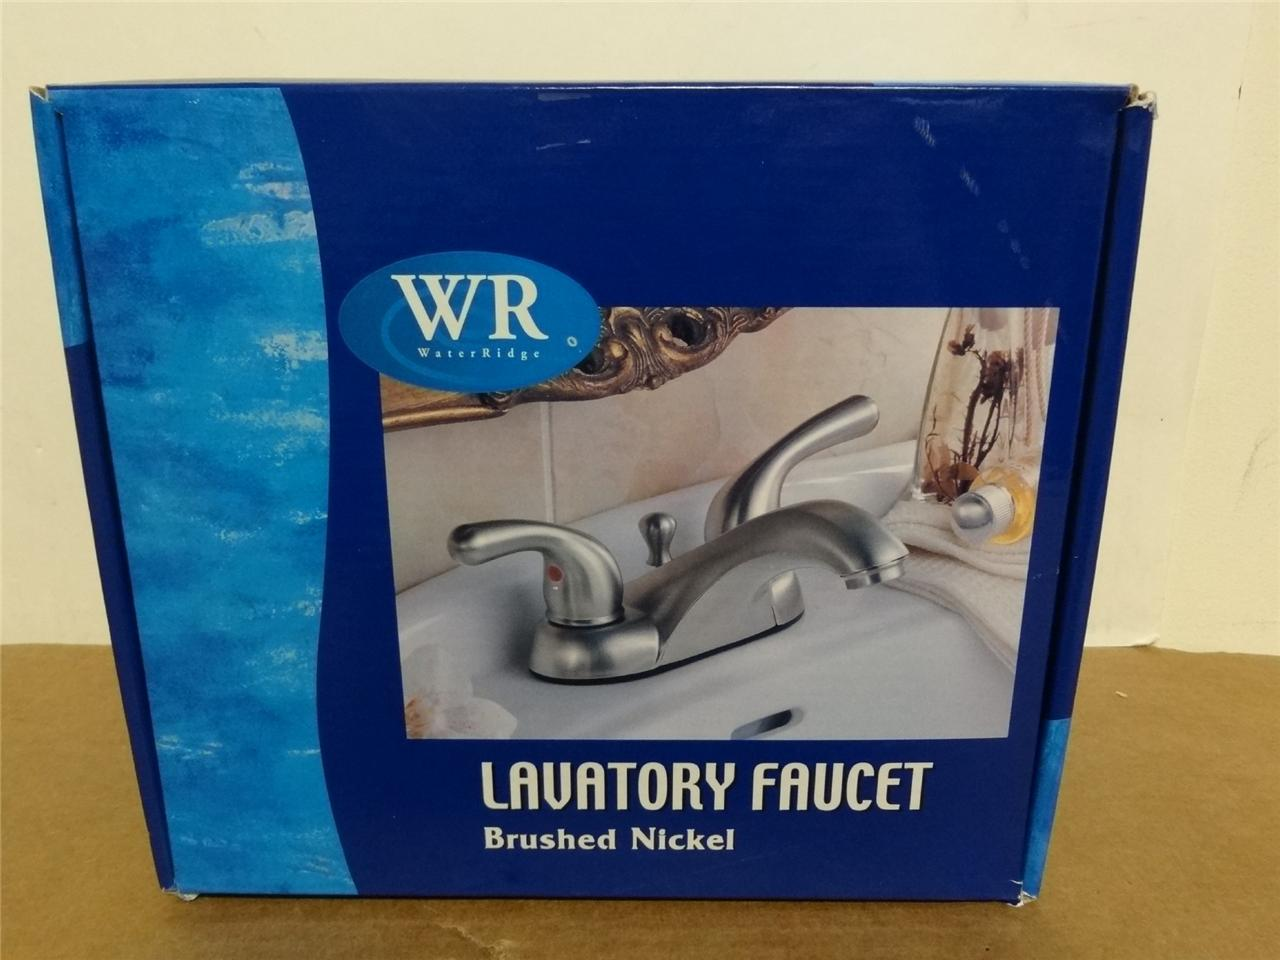 Costco Water Ridge Lavatory Faucet - 8.500 Faucet Lowes